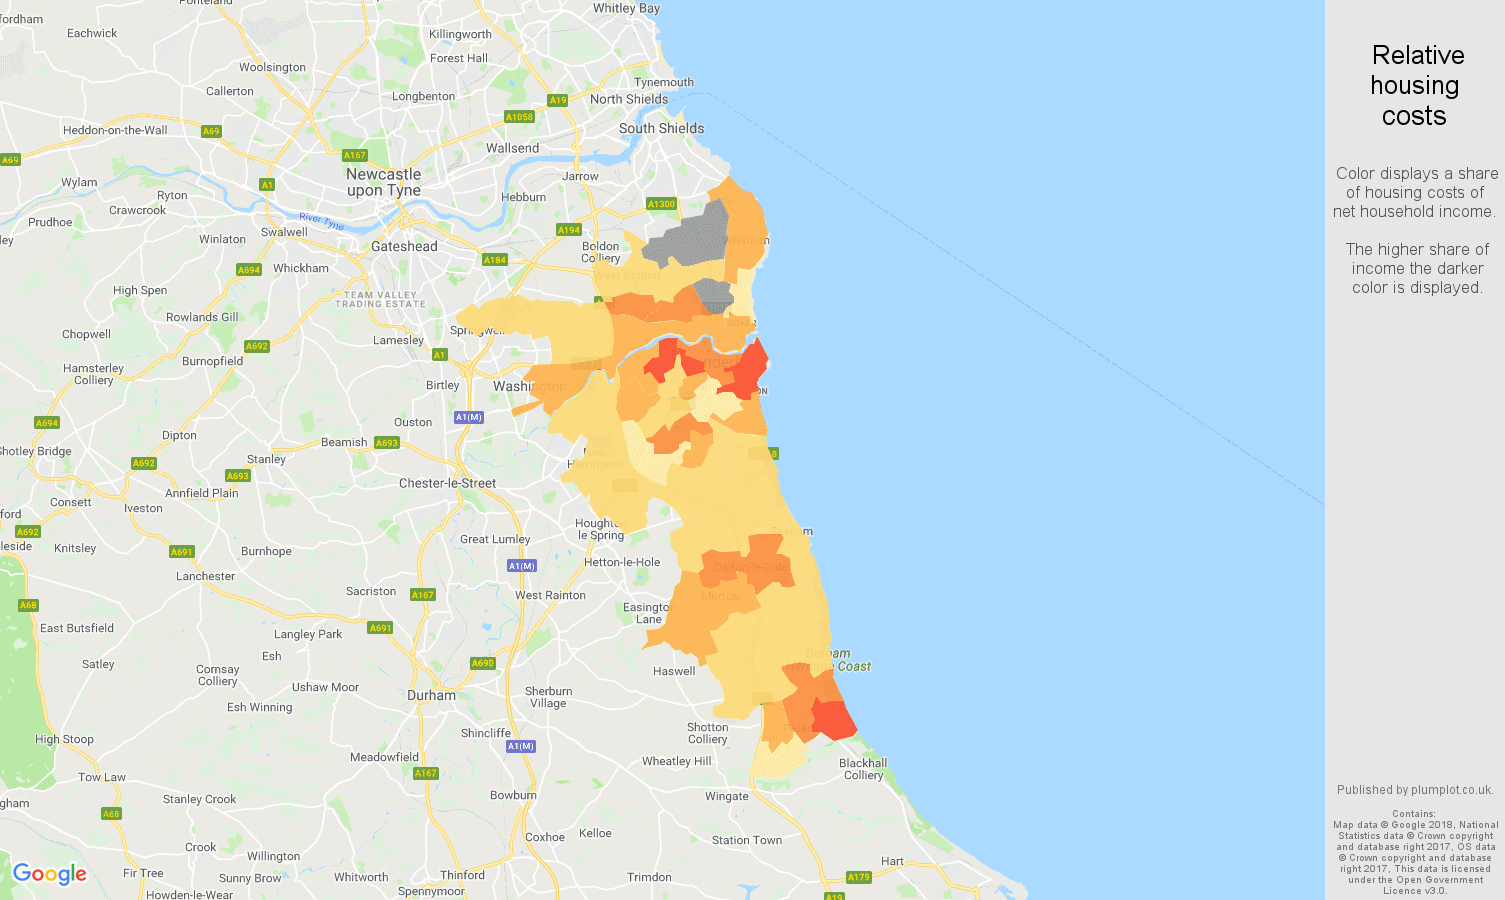 Sunderland relative housing costs map